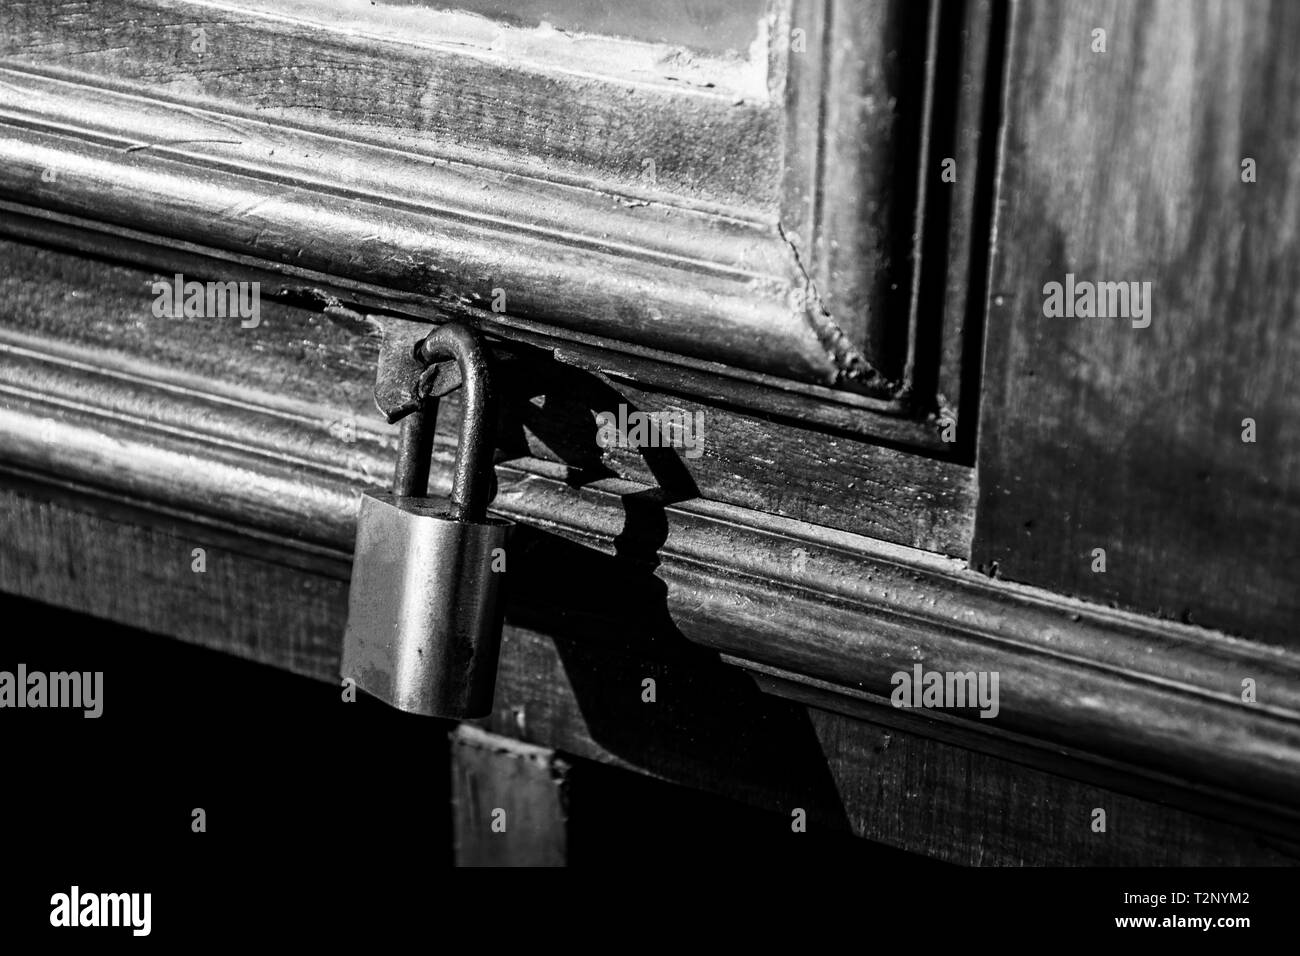 Old lock on a wooden door with rusty closed padlock, Vintage Black and white photo - Stock Image